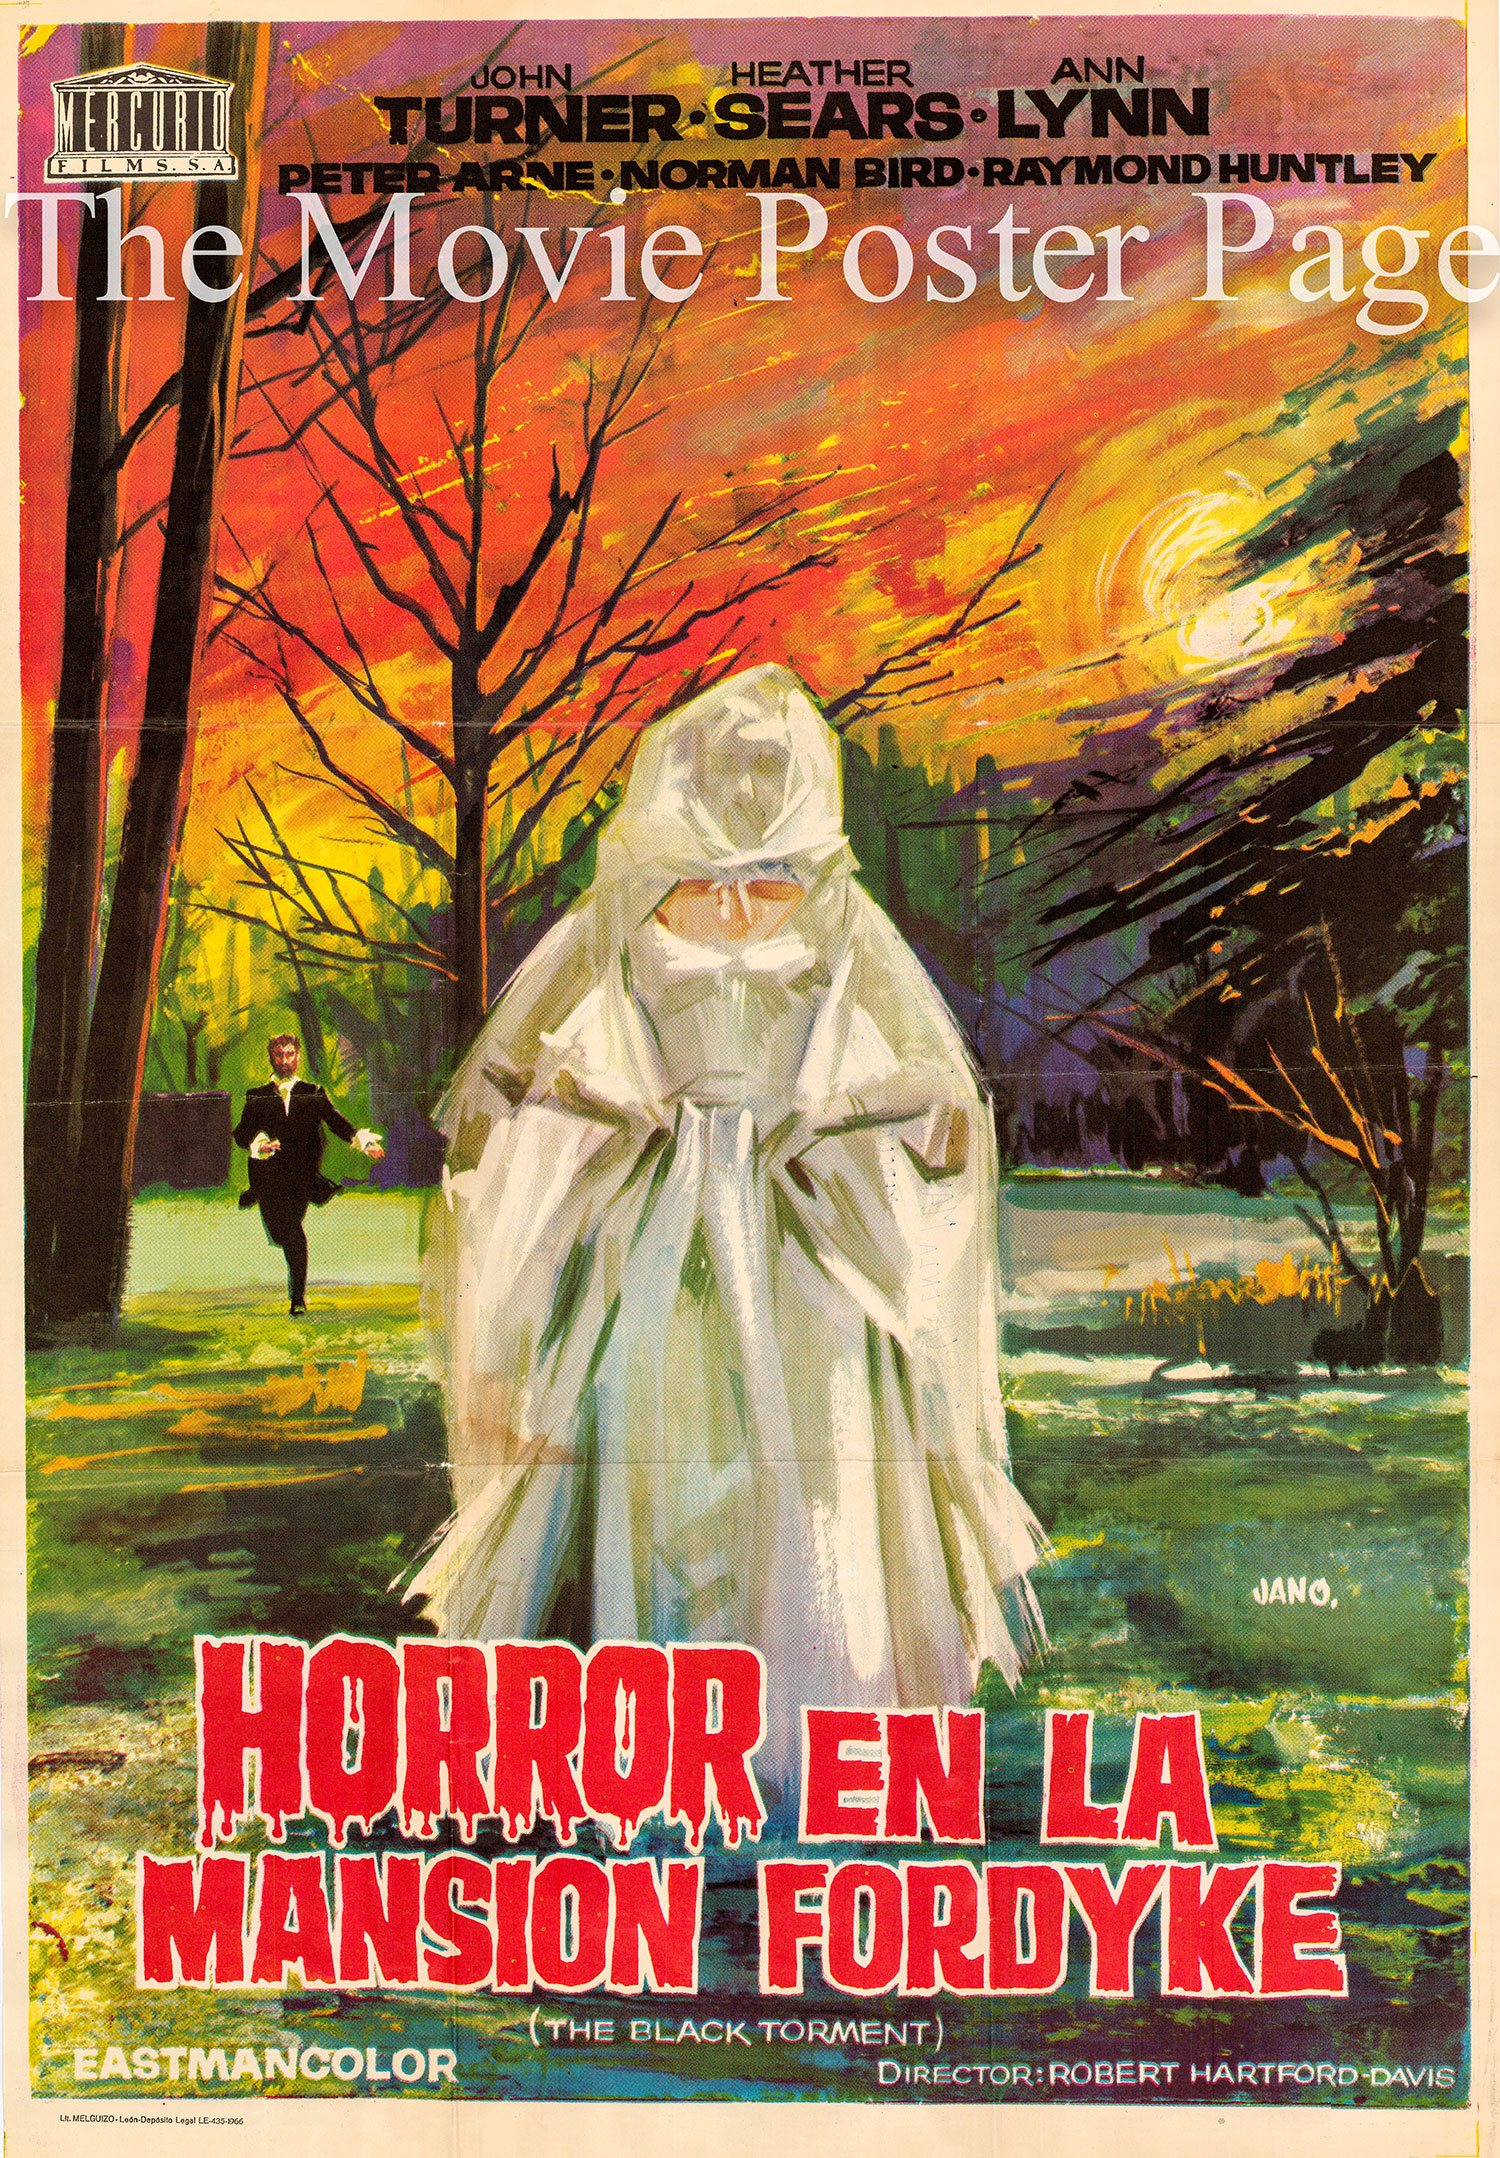 Pictured is a Spanish promotional poster a 1966 rerelease of the 1964 Robert Hartford-Davis film The Black Torment starring Heather Sears.